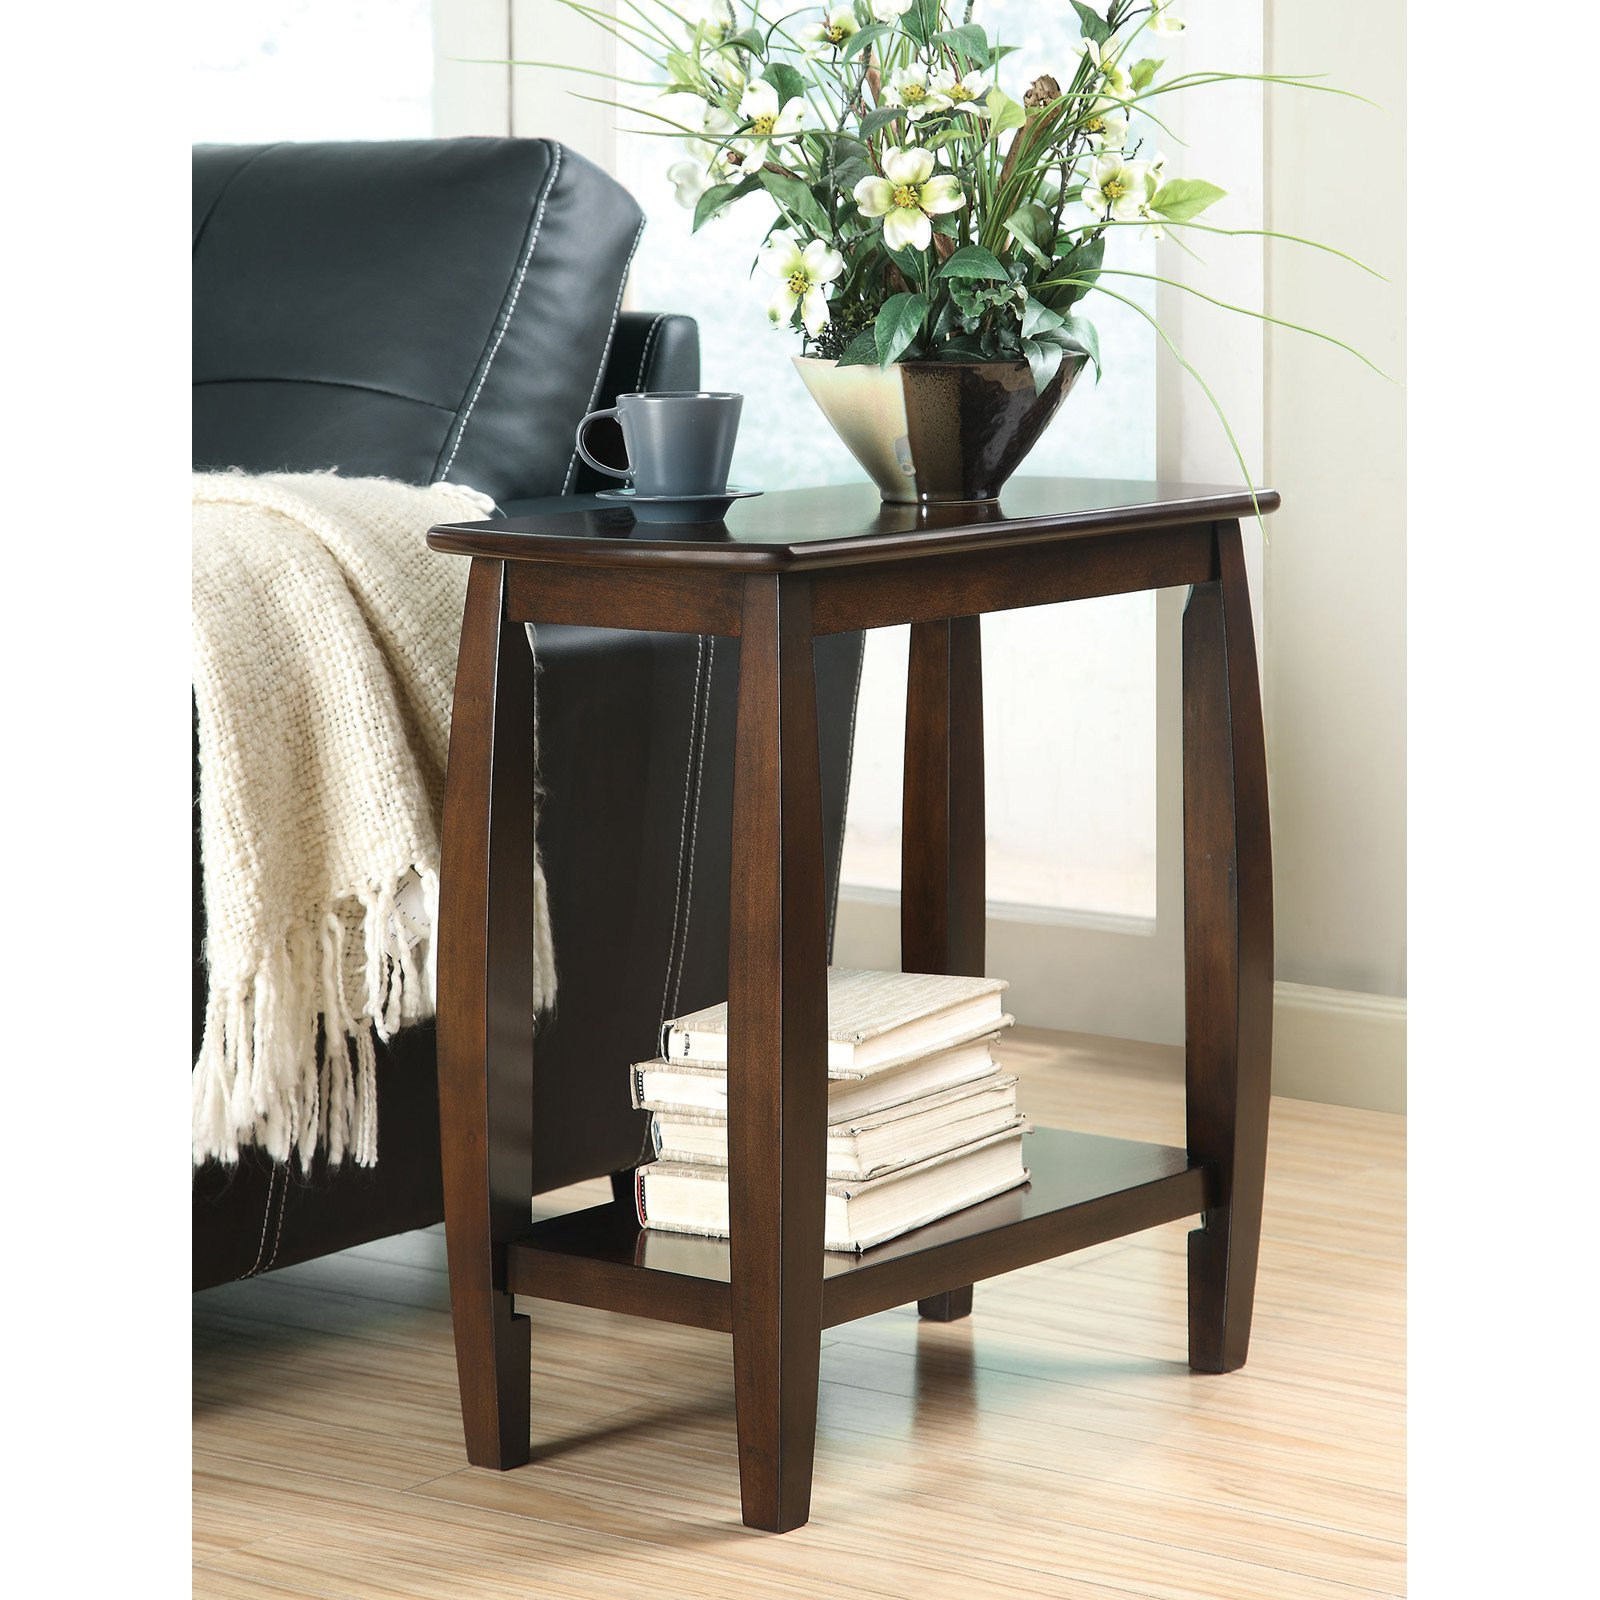 Coaster Furniture Cappuccino Transitional Chairside End Table